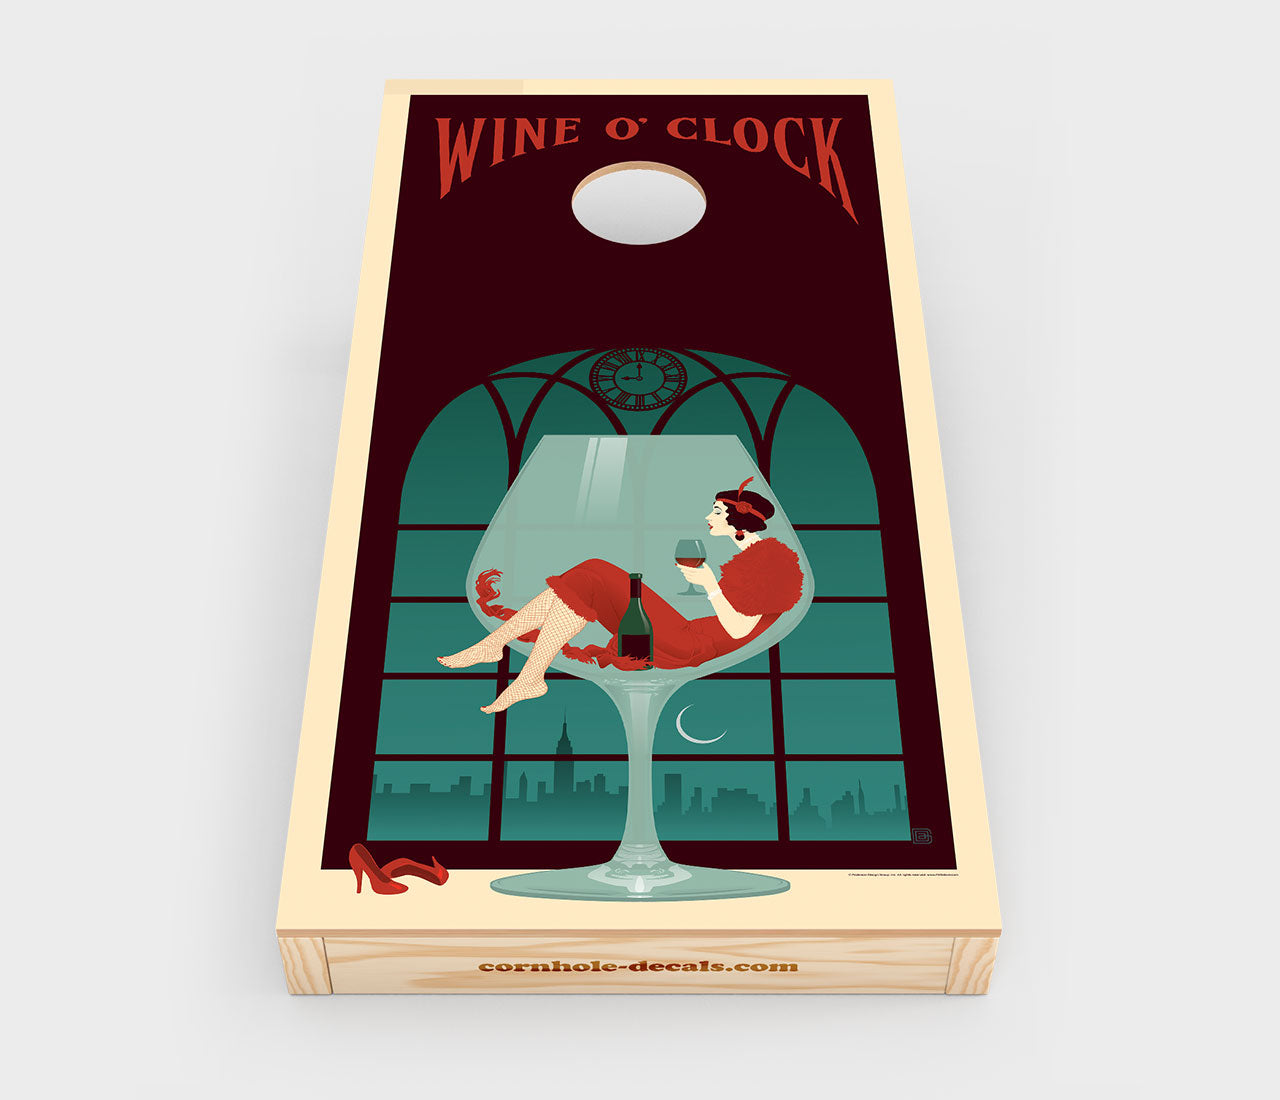 Chuggles Cornhole - Anderson Design Group - Wine O' Clock Cornhole Decals - Straight On View